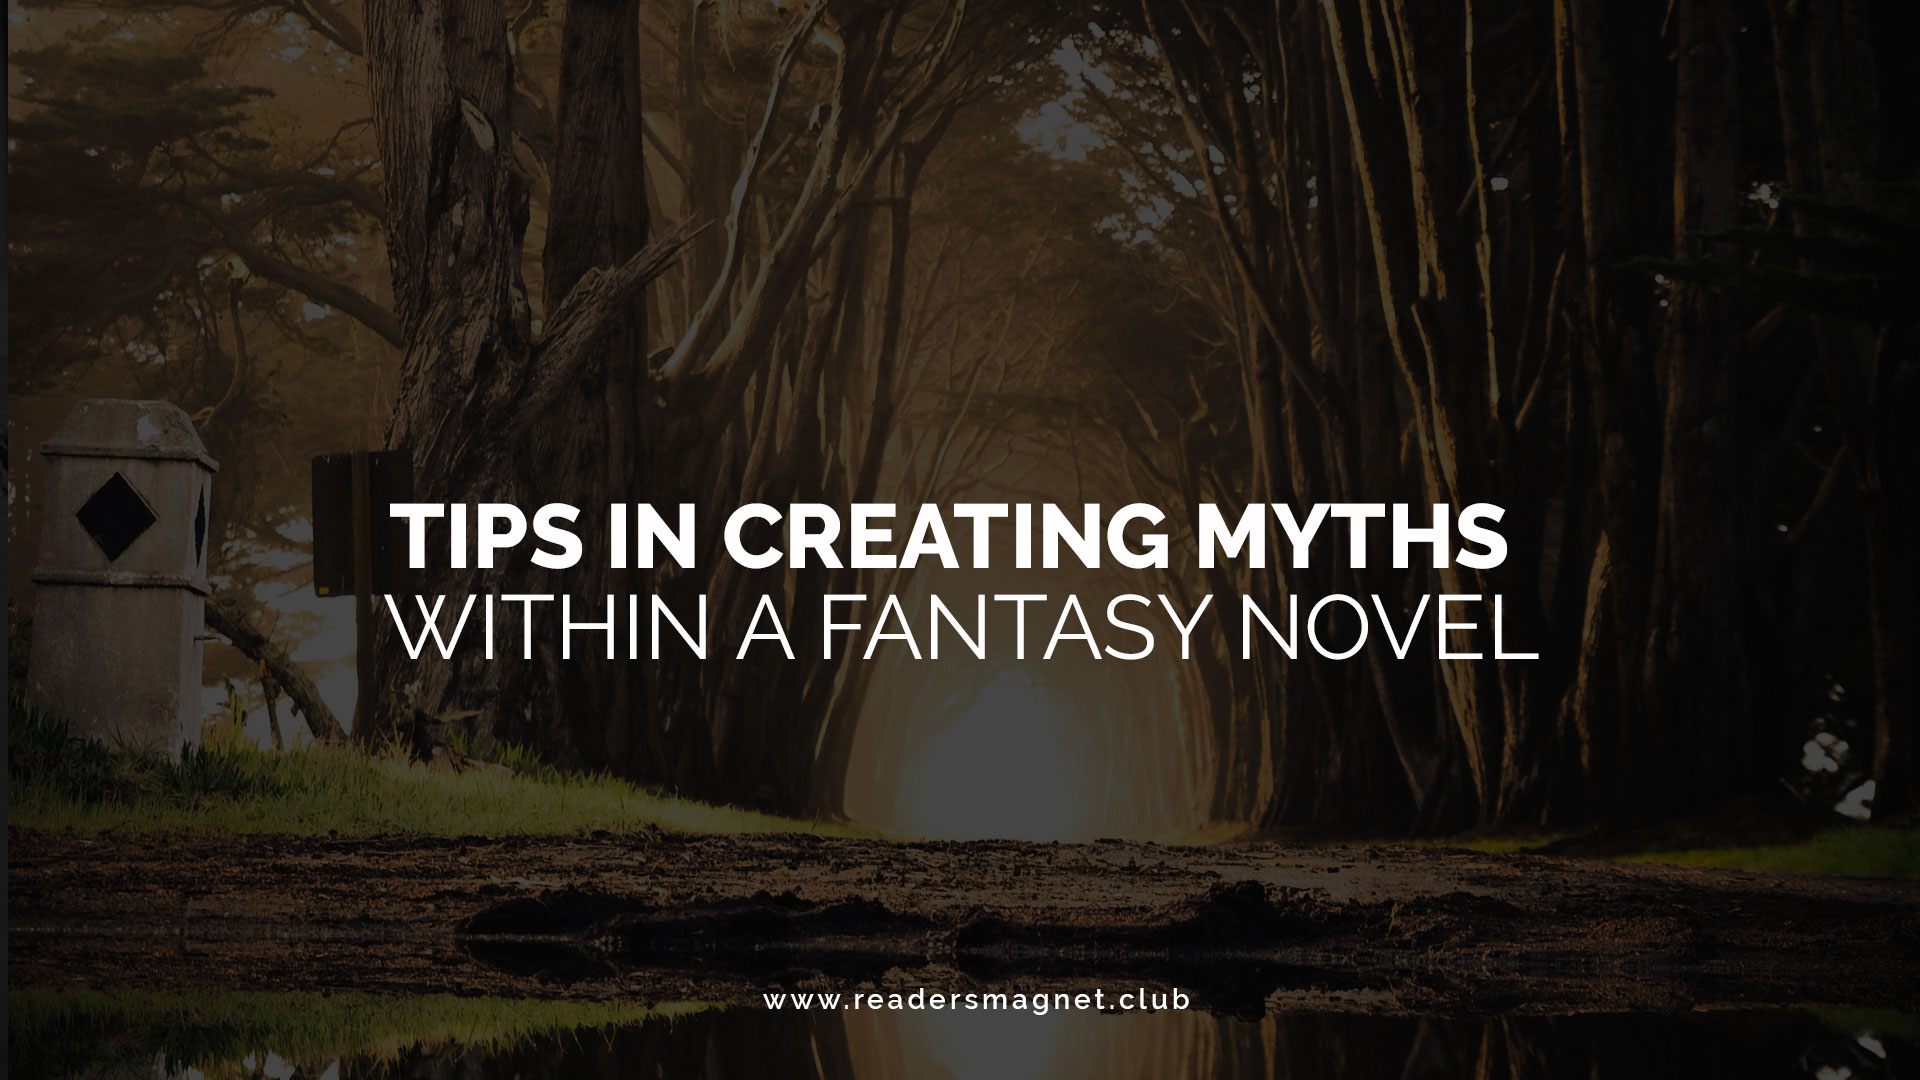 Tips-in-Creating-Myths-Within-A-Fantasy-Novel banner